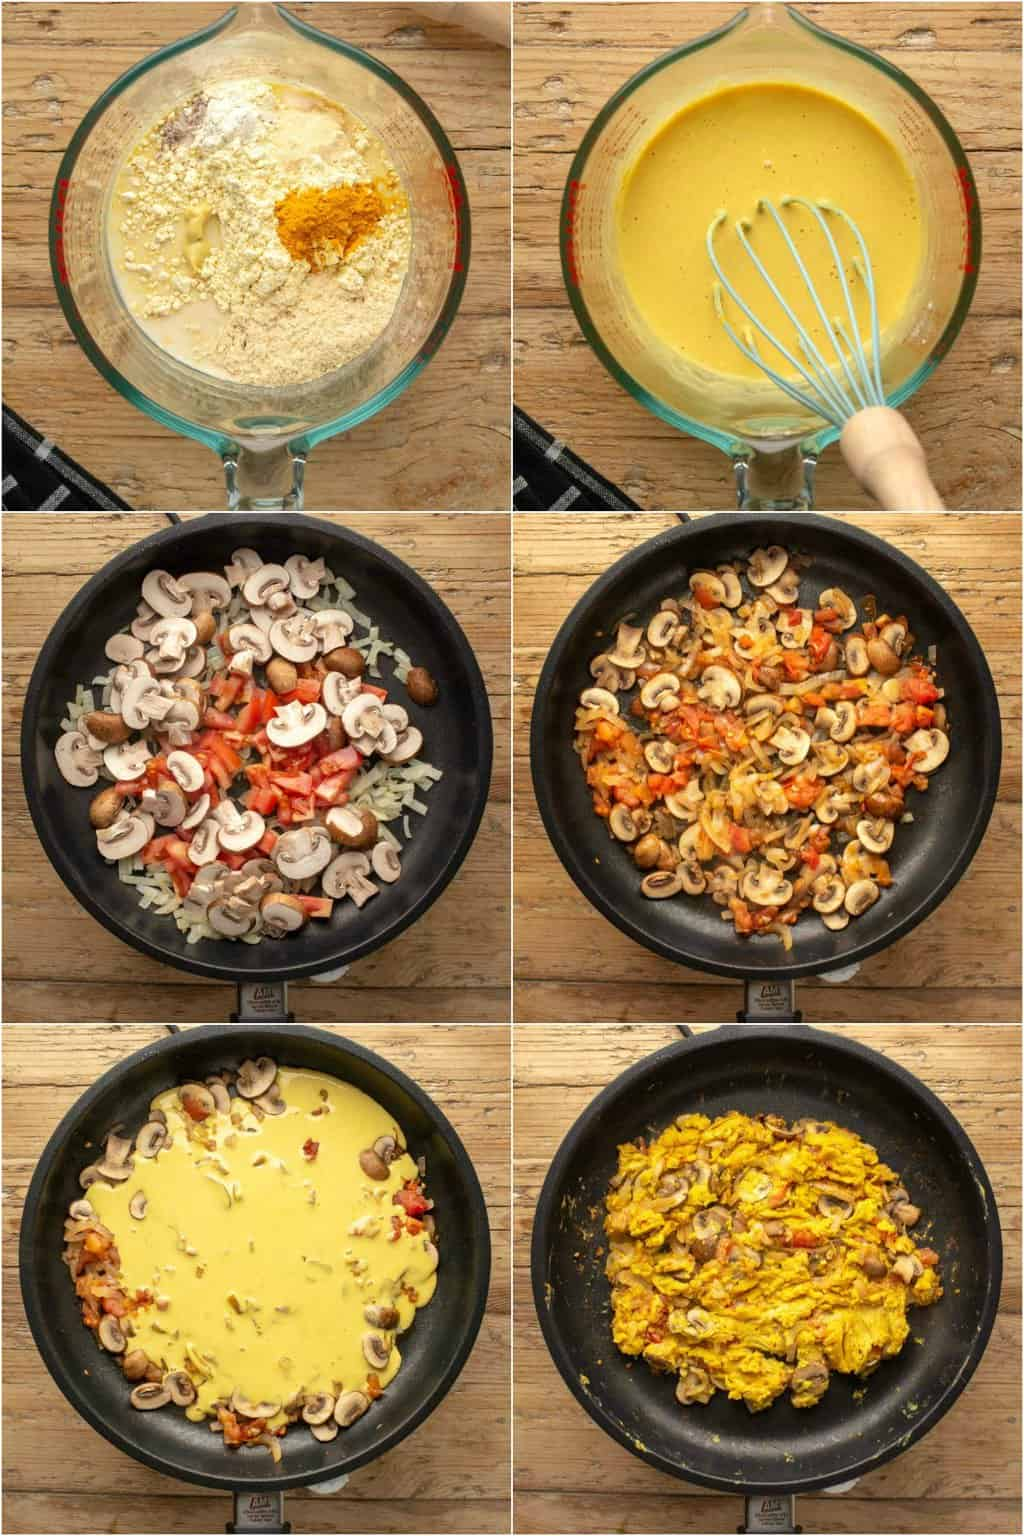 Step by step process photo collage of making vegan scrambled eggs.